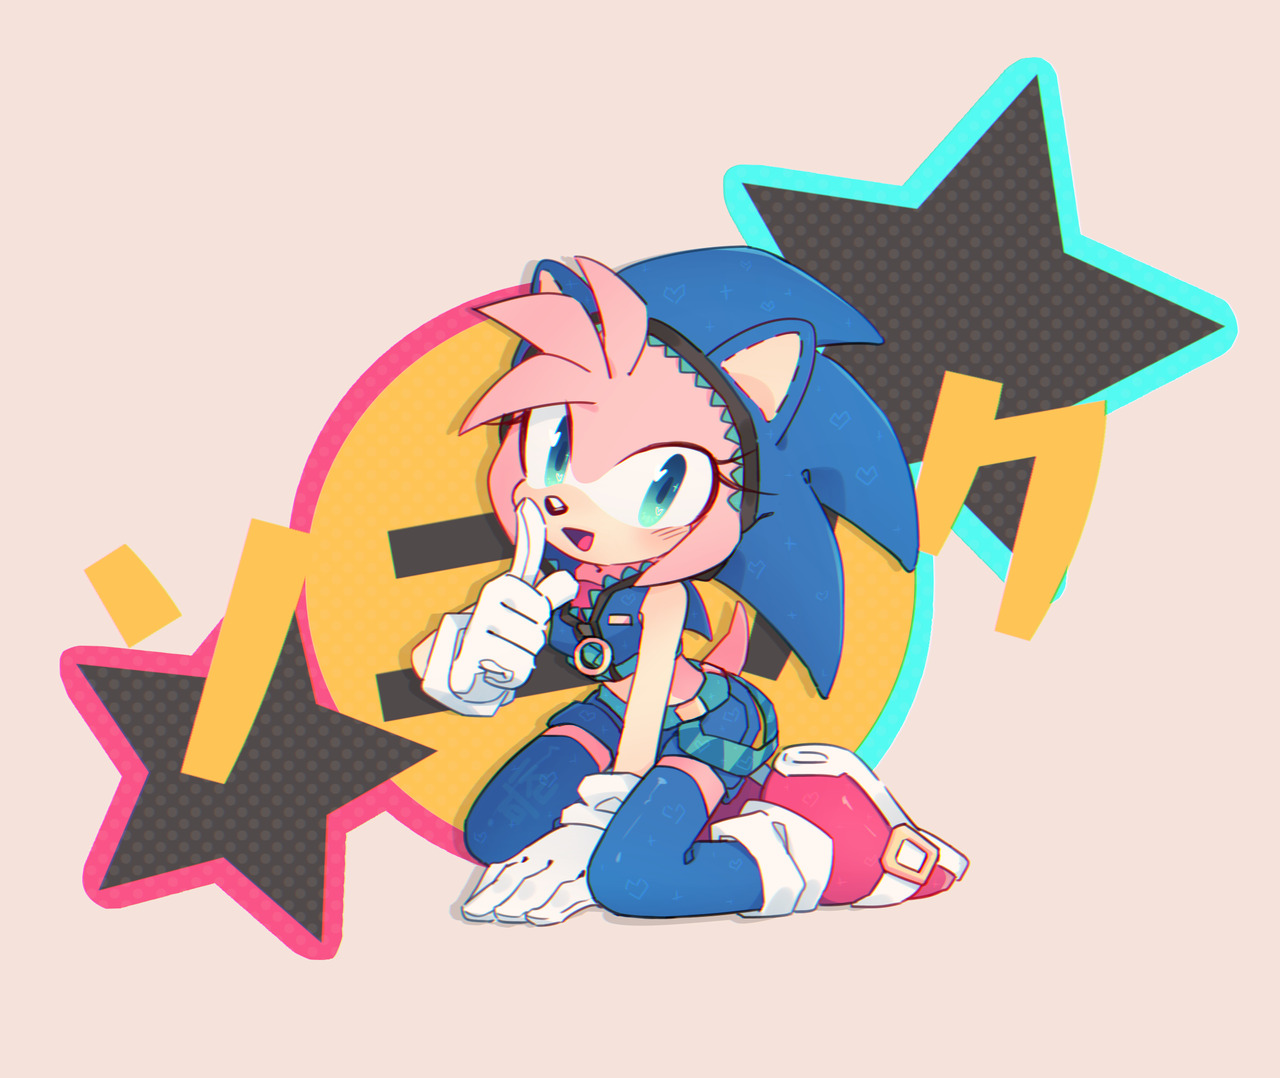 Amy Off Of Sonic did fine on the final but now can't face the teacher cause i